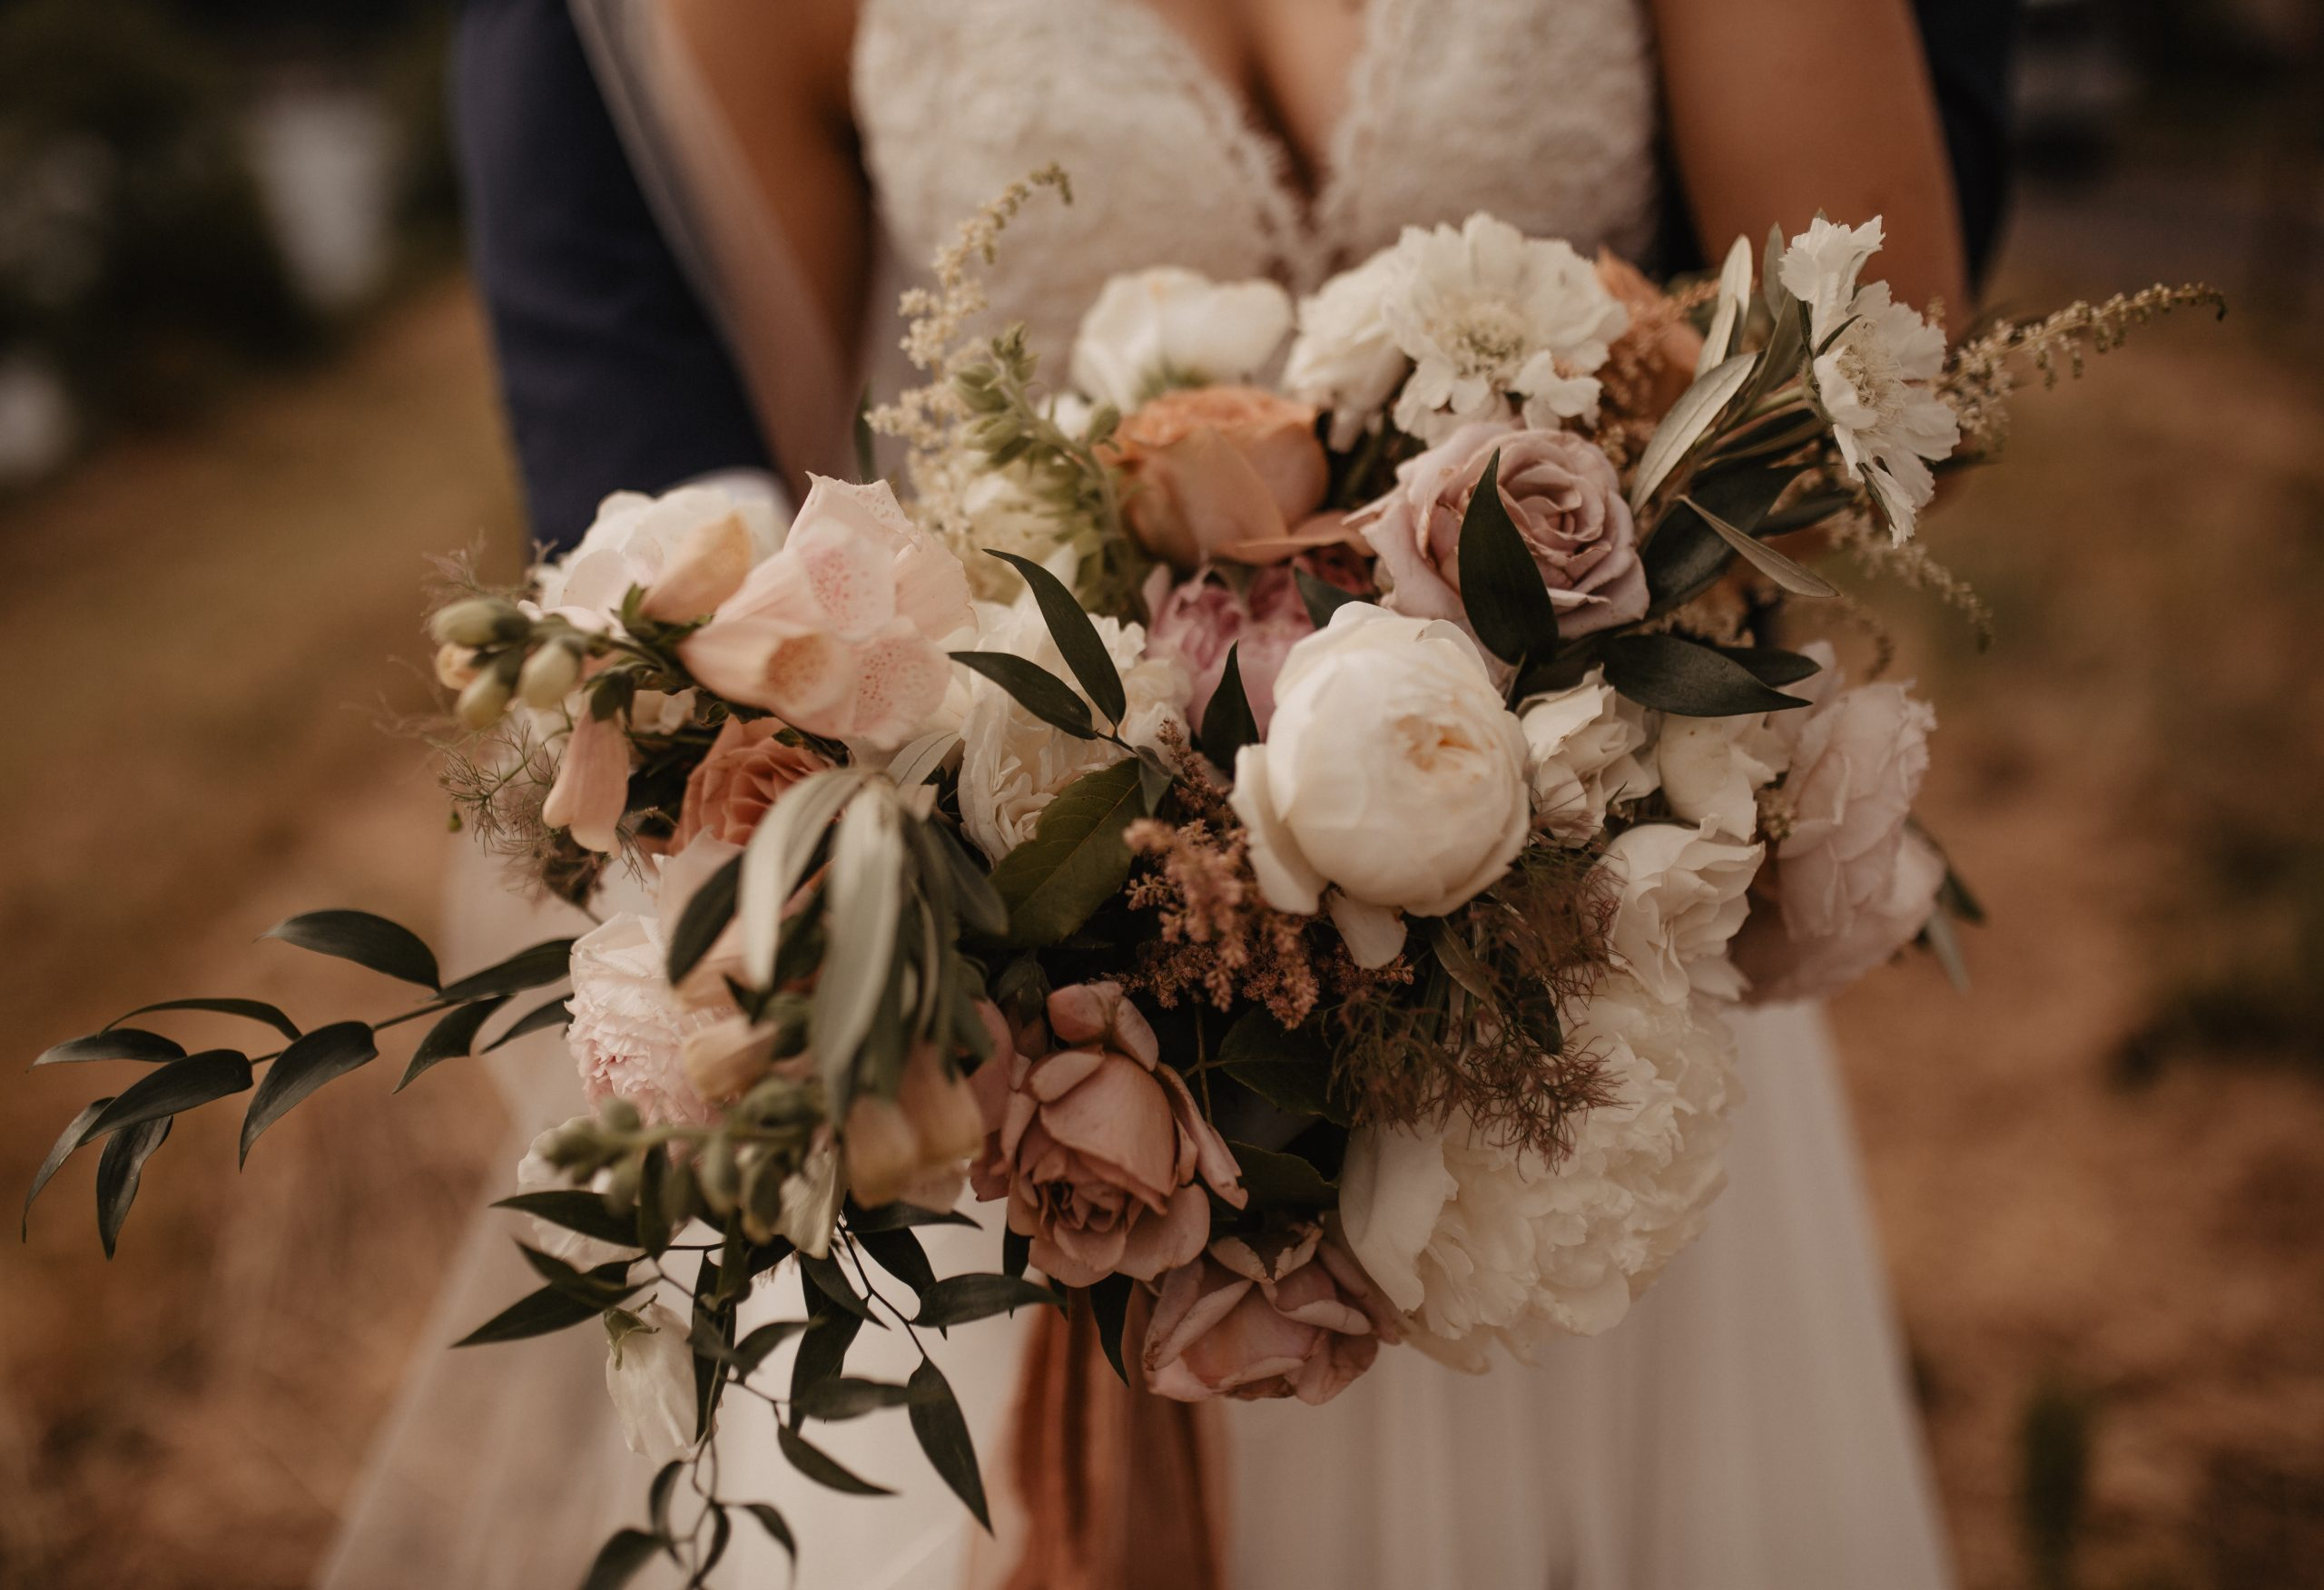 Bride holding a moody bouquet with neutral flowers and greenery